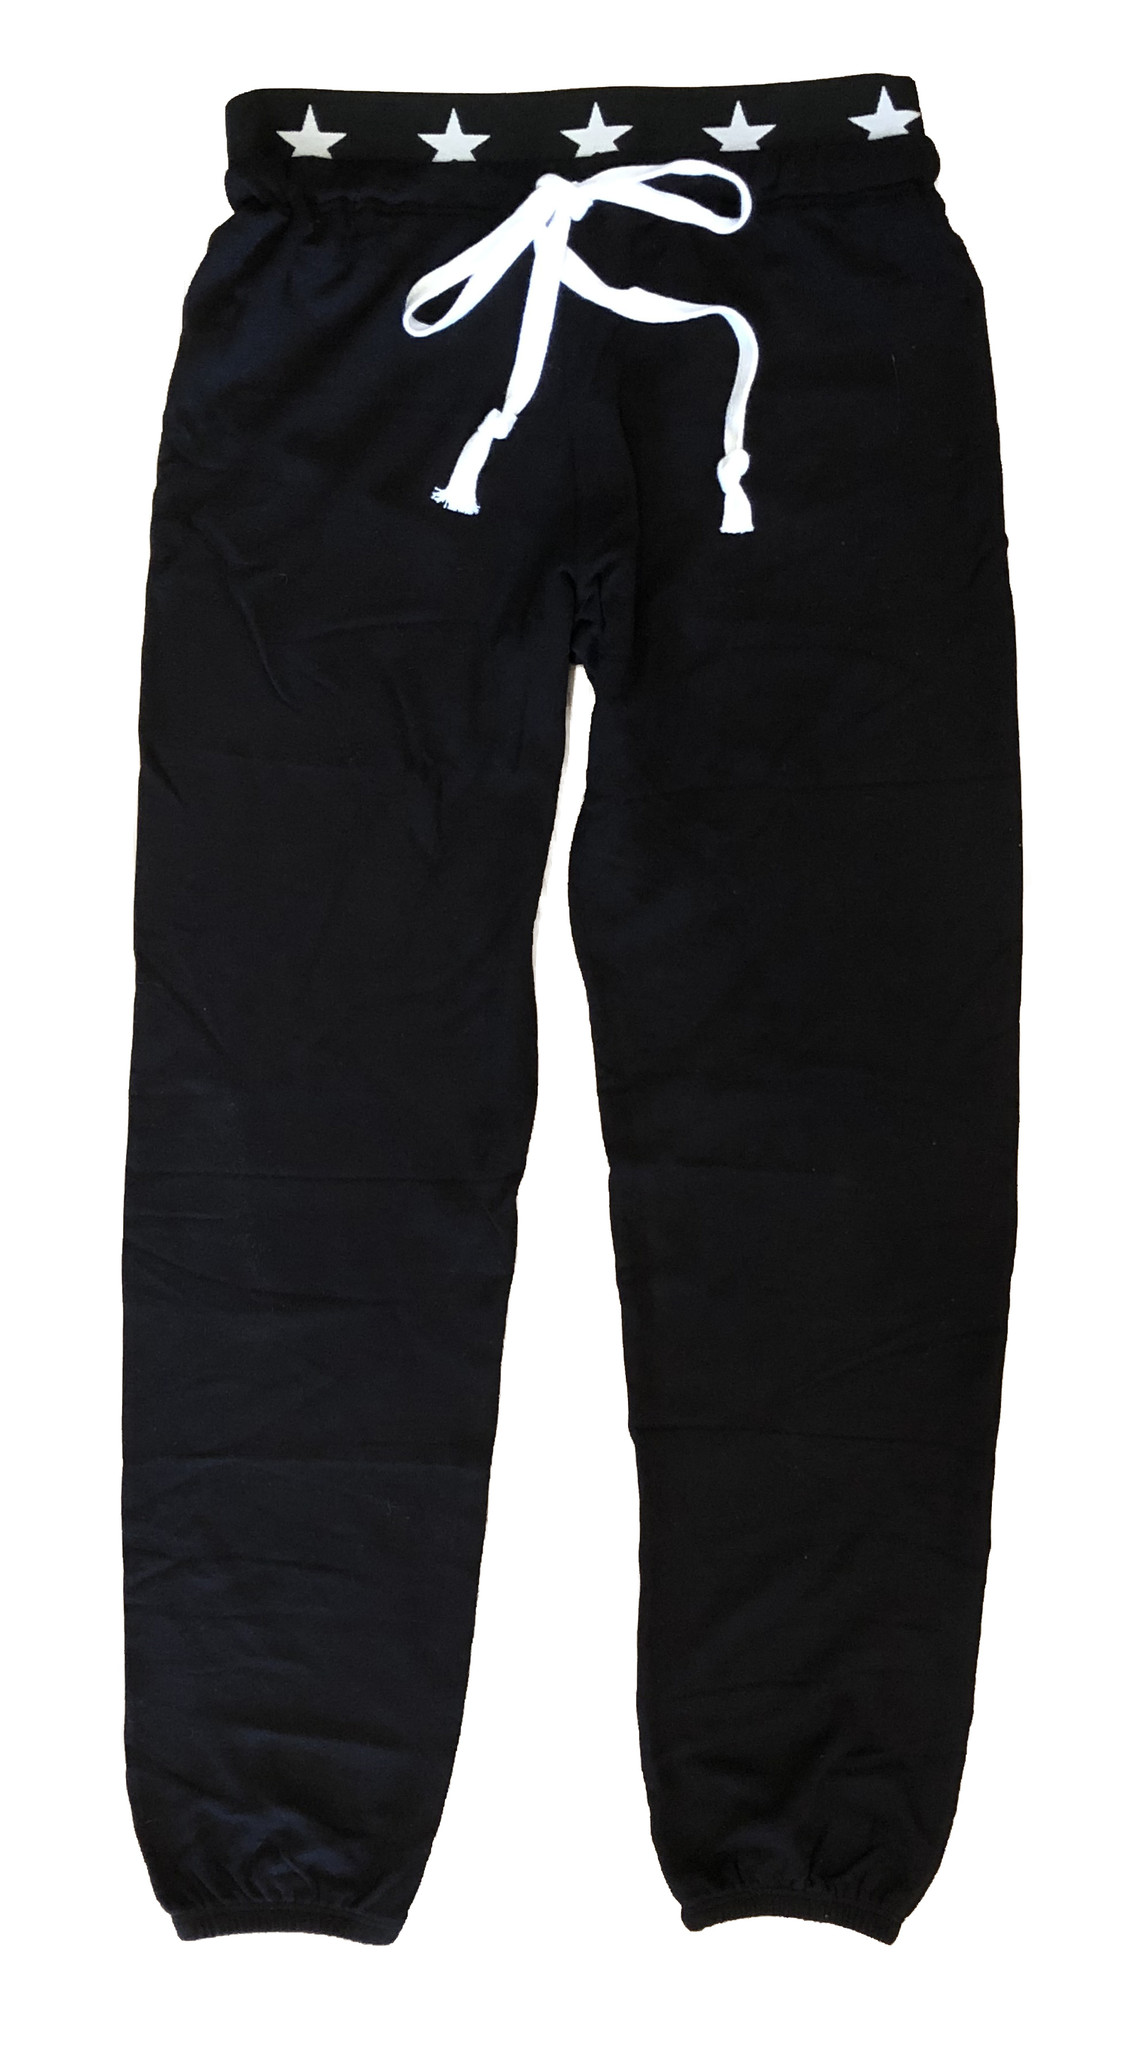 Katie J Supersoft Black Sweatpant with Star Waistband